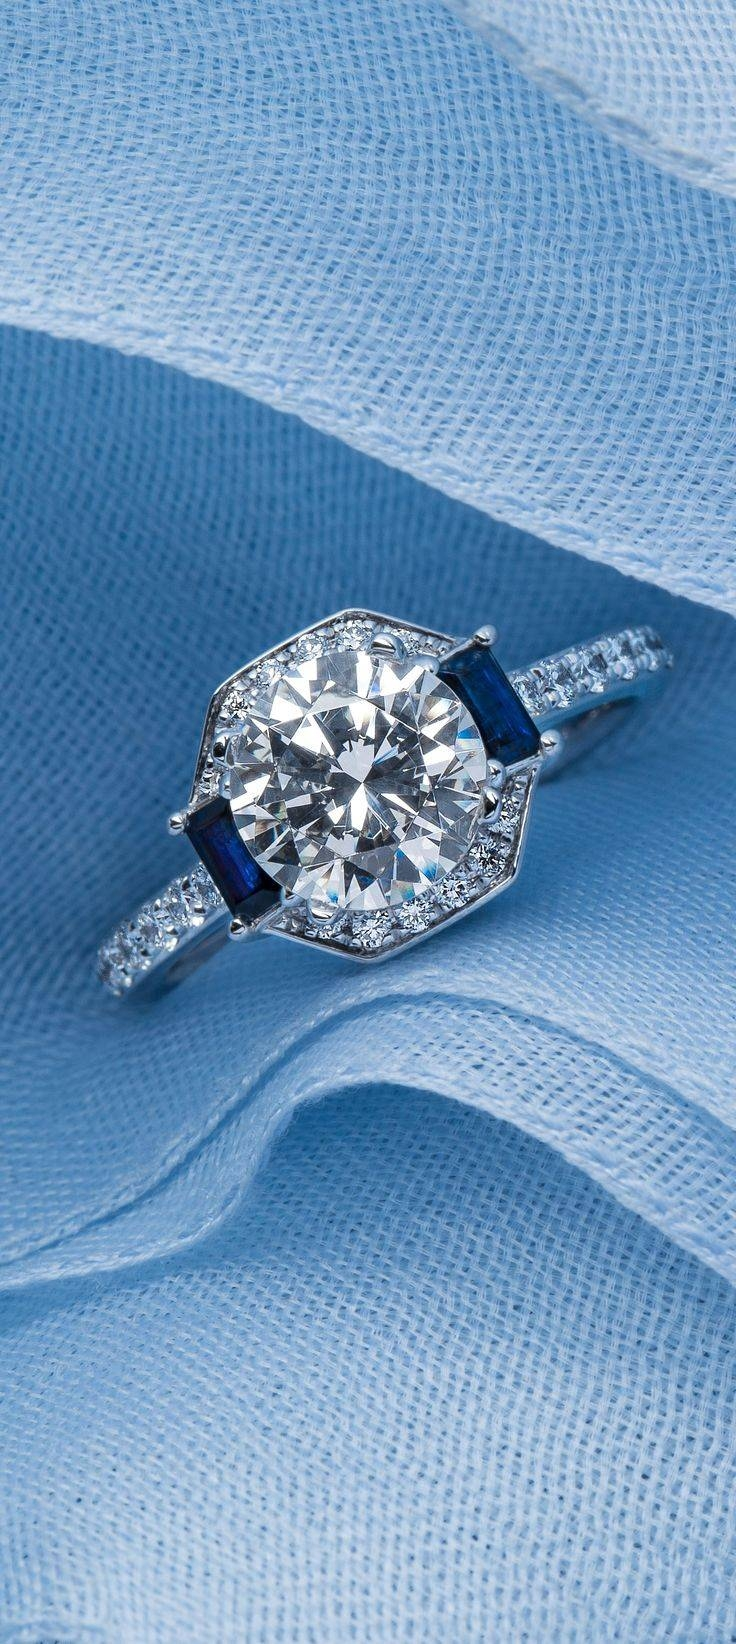 185 Best Monique Lhuillier At Blue Nile Images On Pinterest Within Latest Blue Nile Anniversary Rings (Gallery 25 of 25)